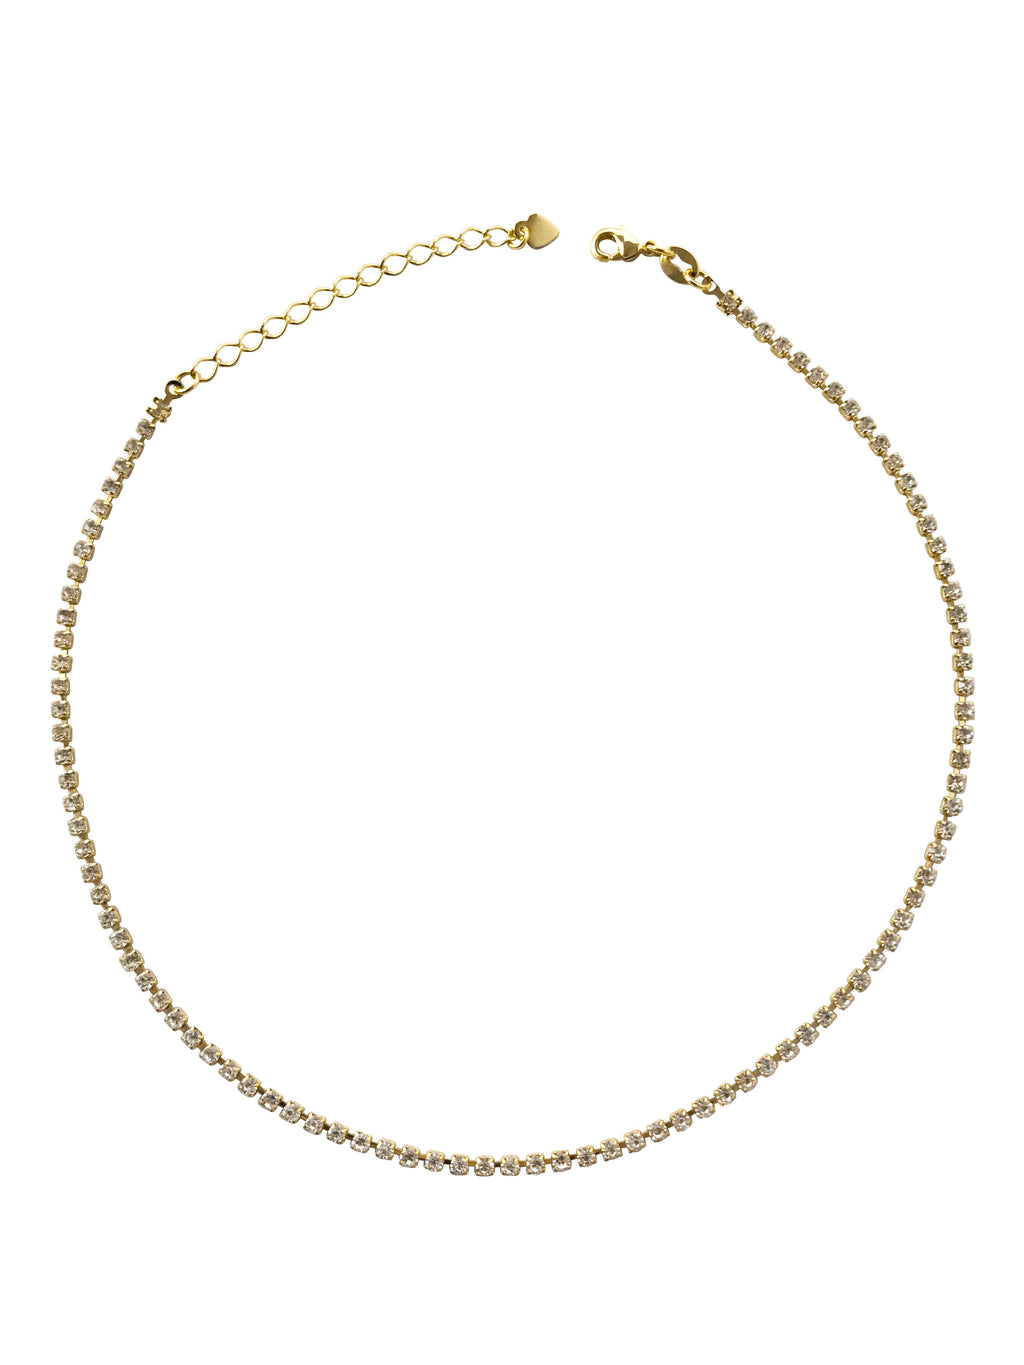 Talia Diamond Choker